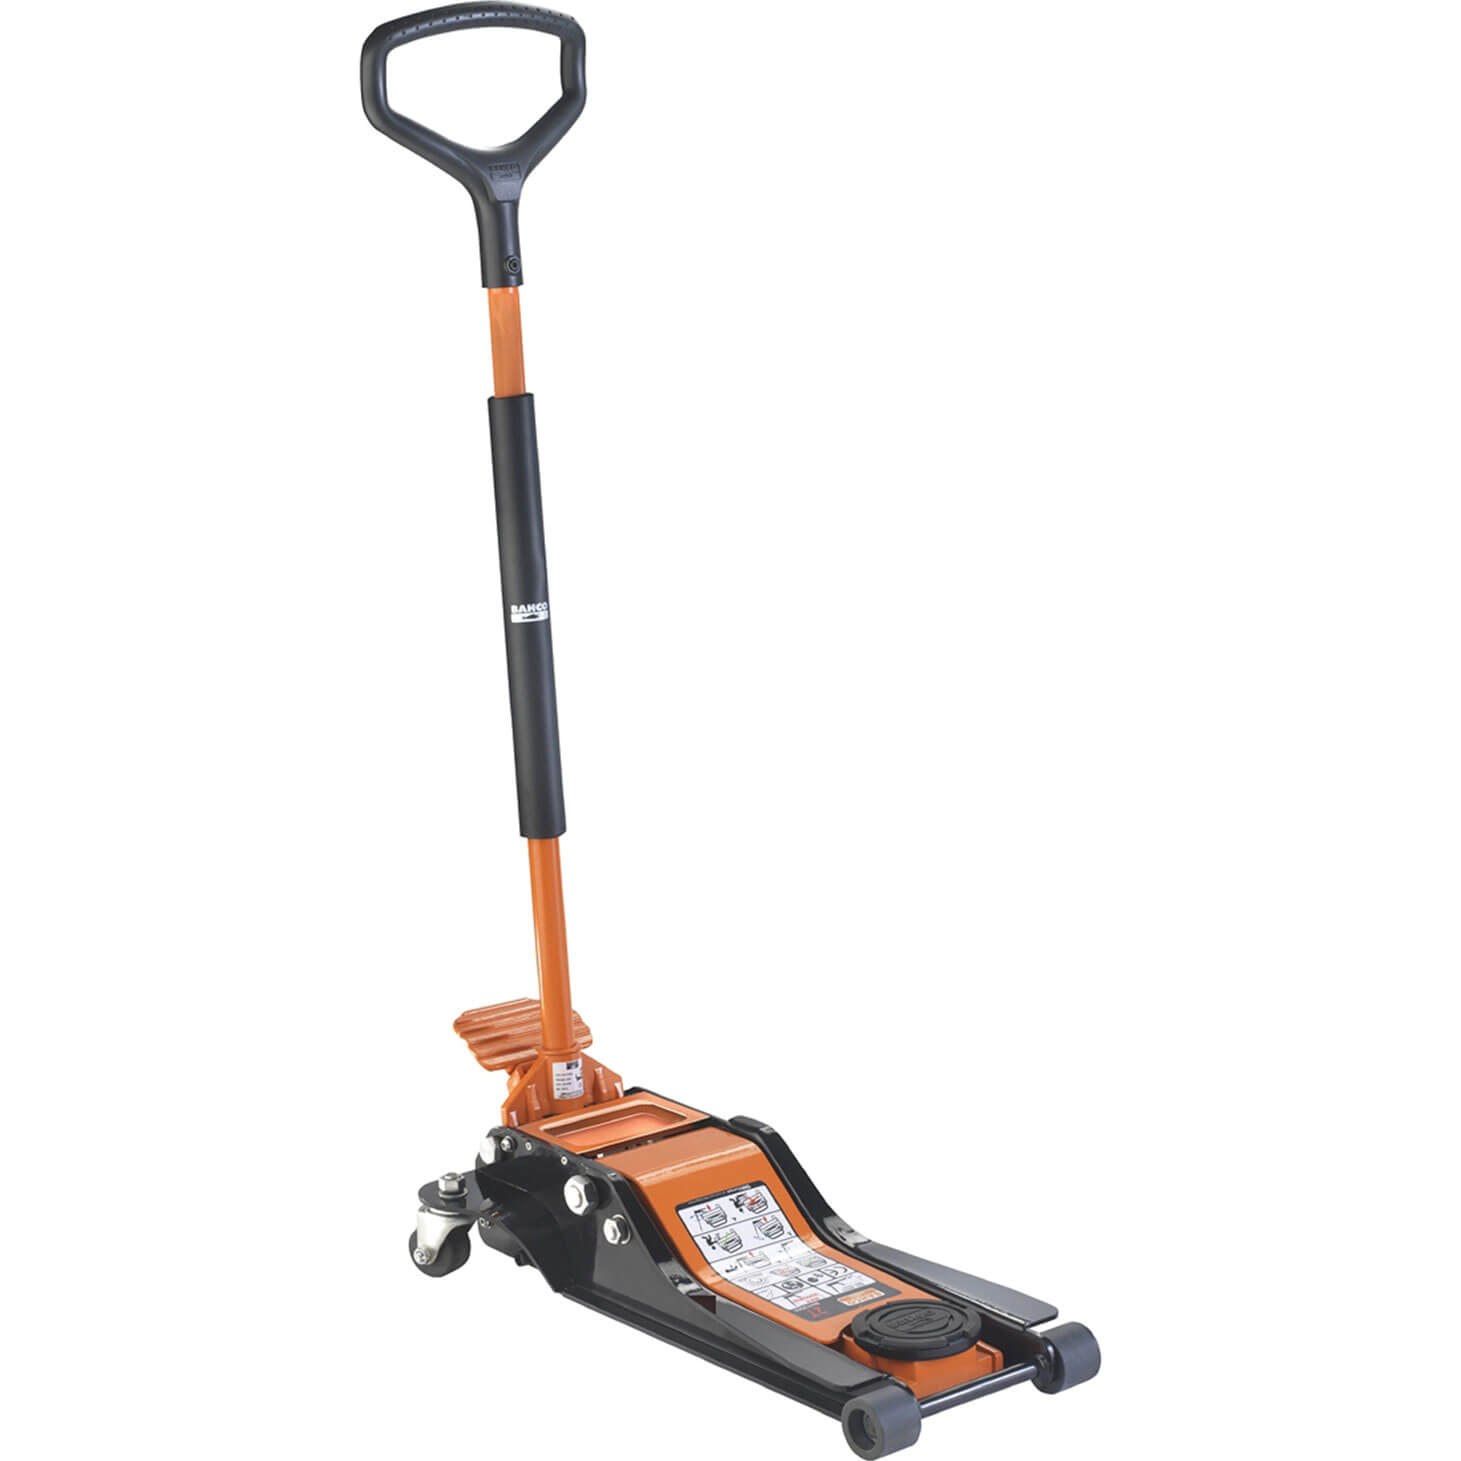 Image of Bahco Low Entry Trolley Jack 2 Tonne